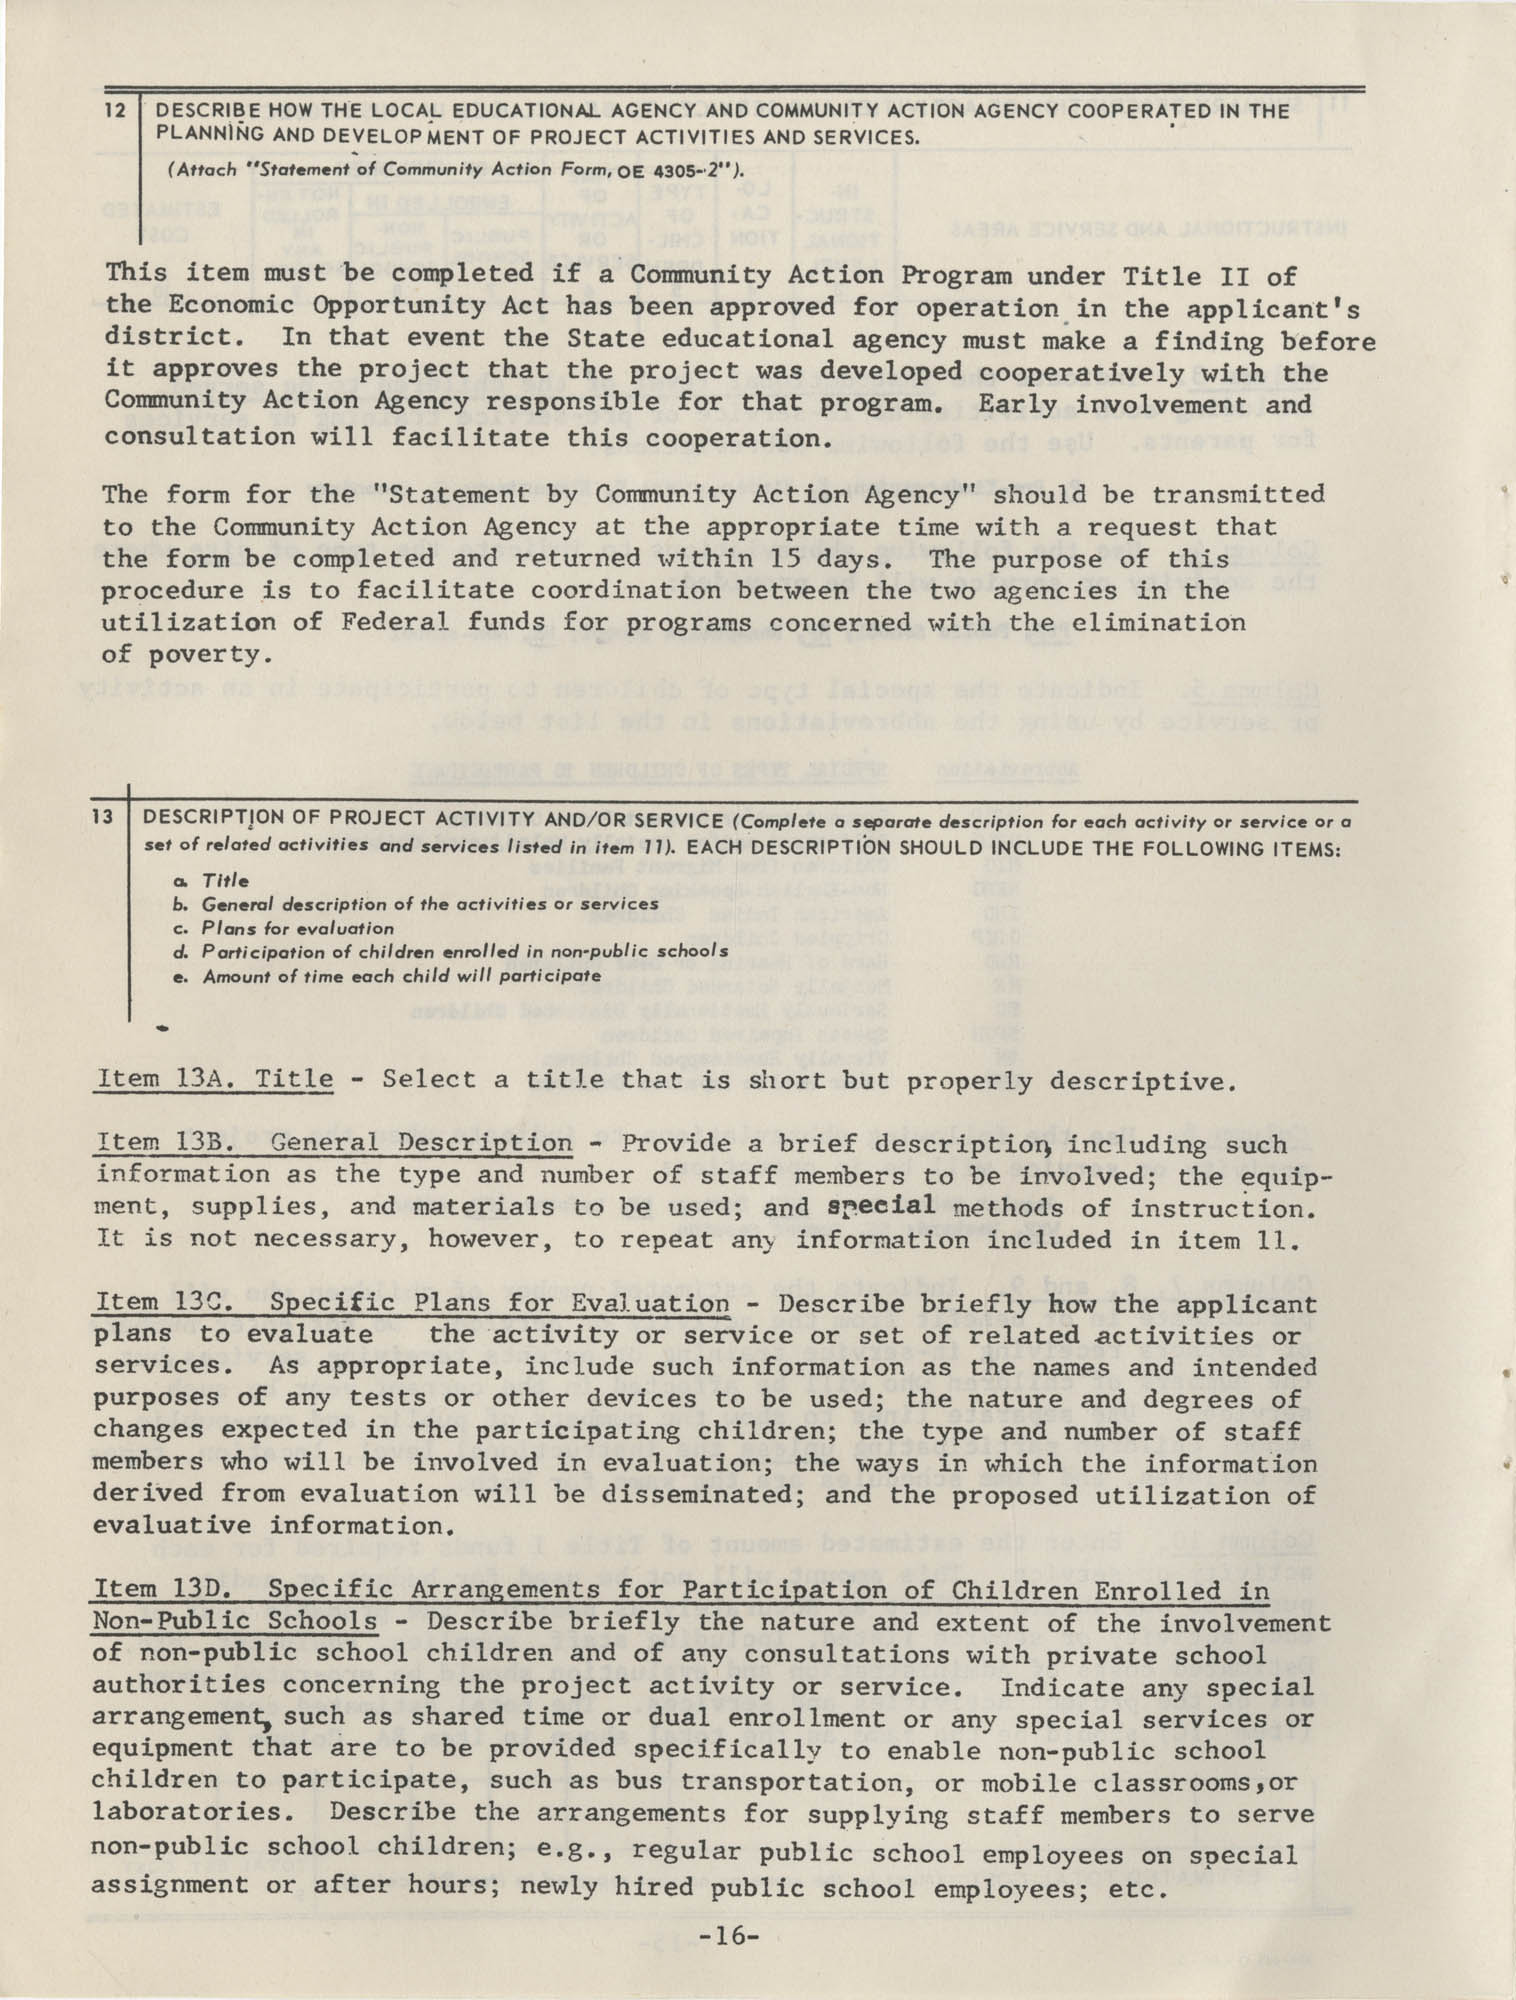 Instructions for Title 1, 1967 Application Forms, Page 16